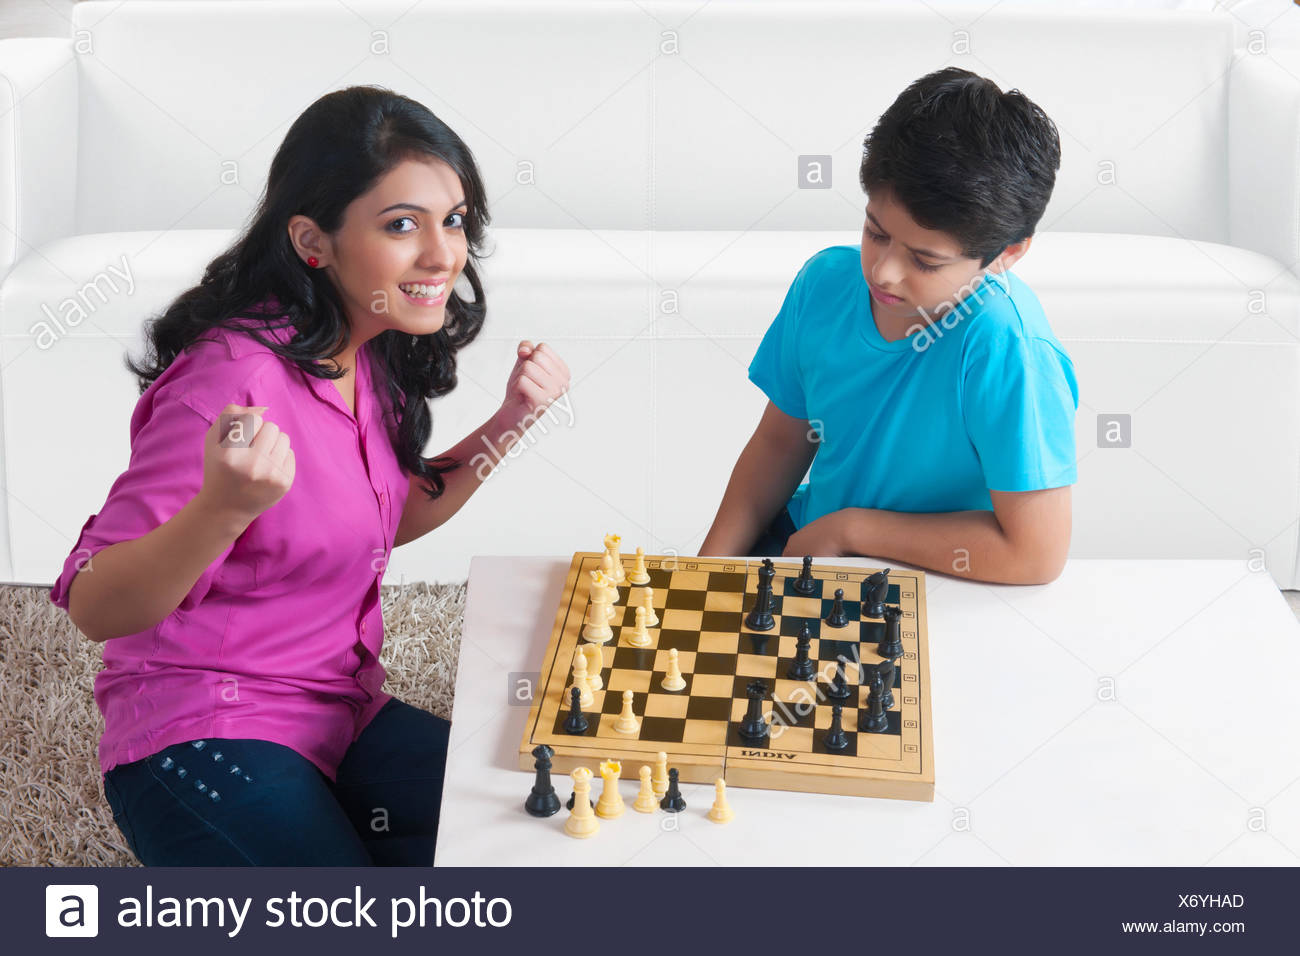 Sister and brother playing chess in living room - Stock Image